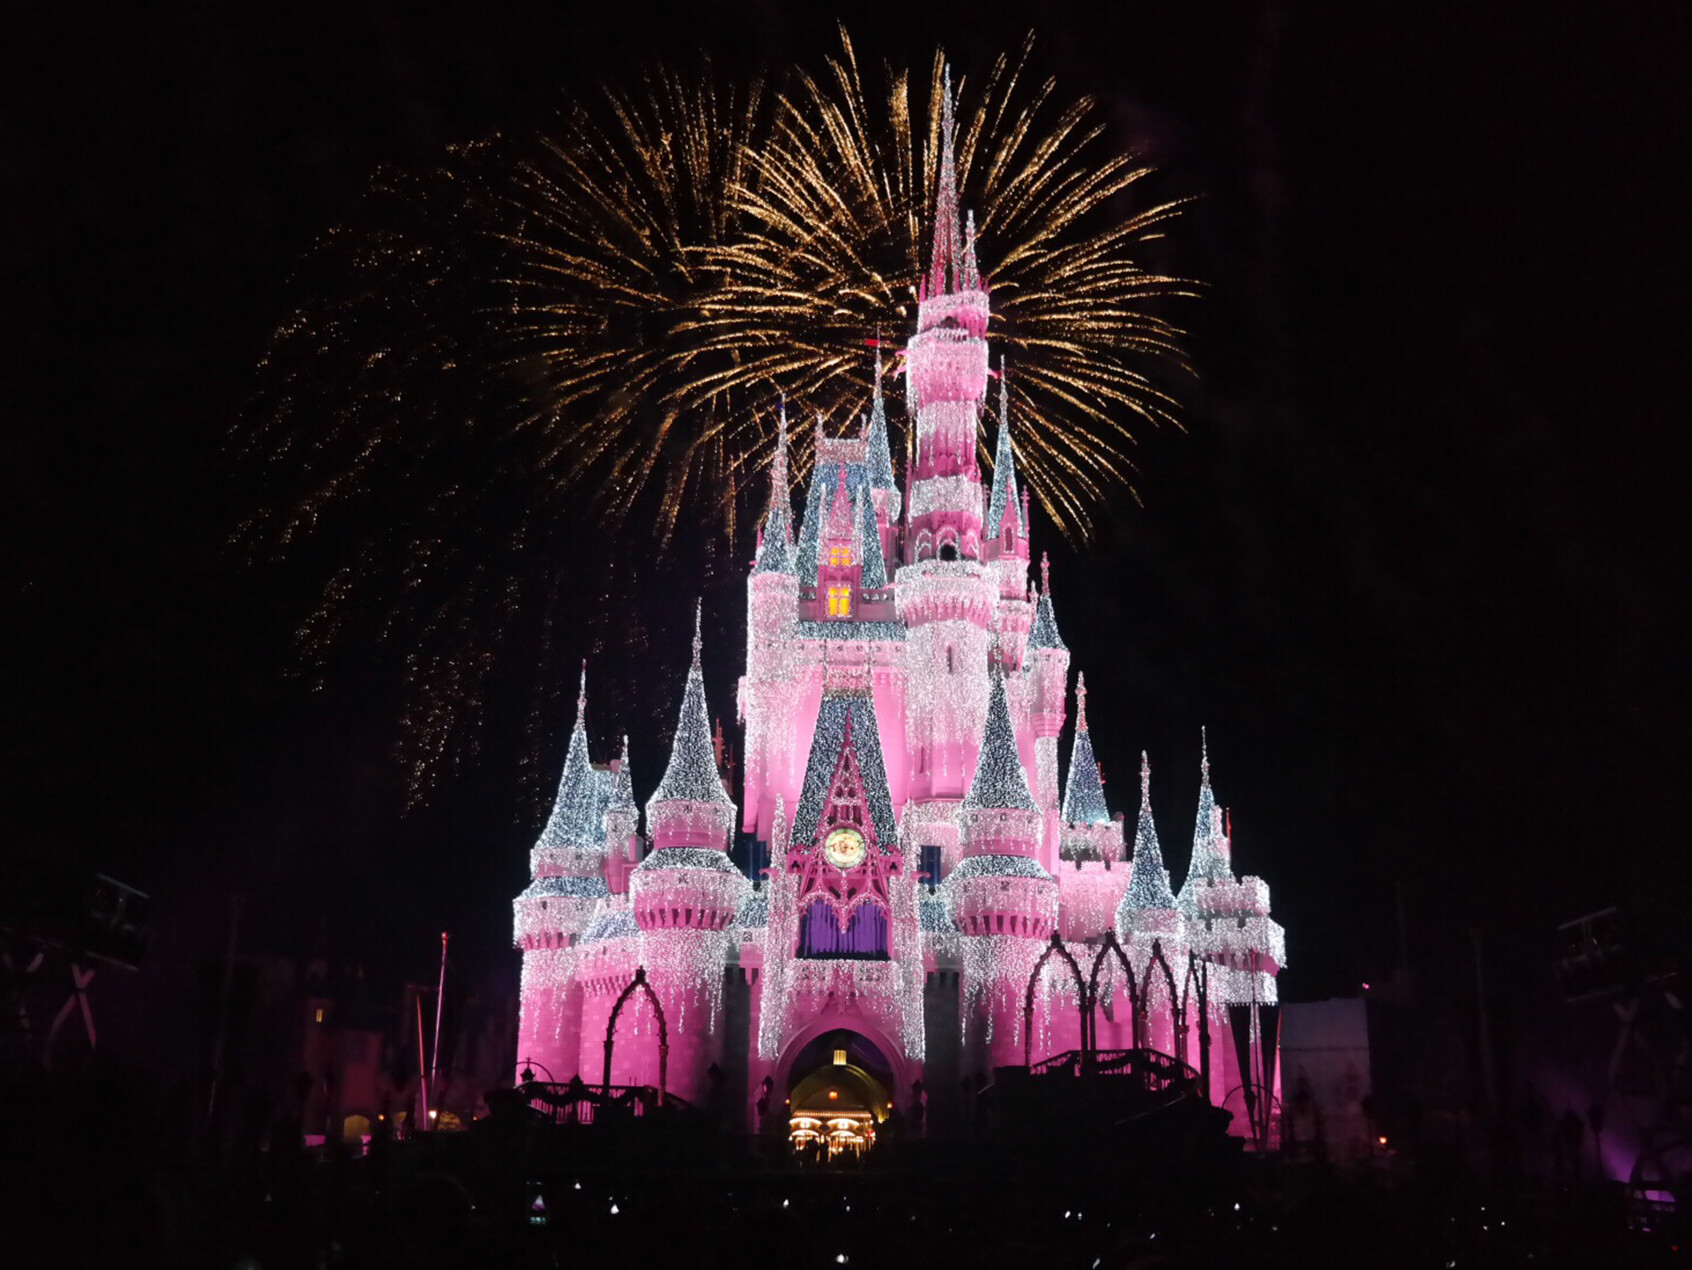 Disney world in 2 days